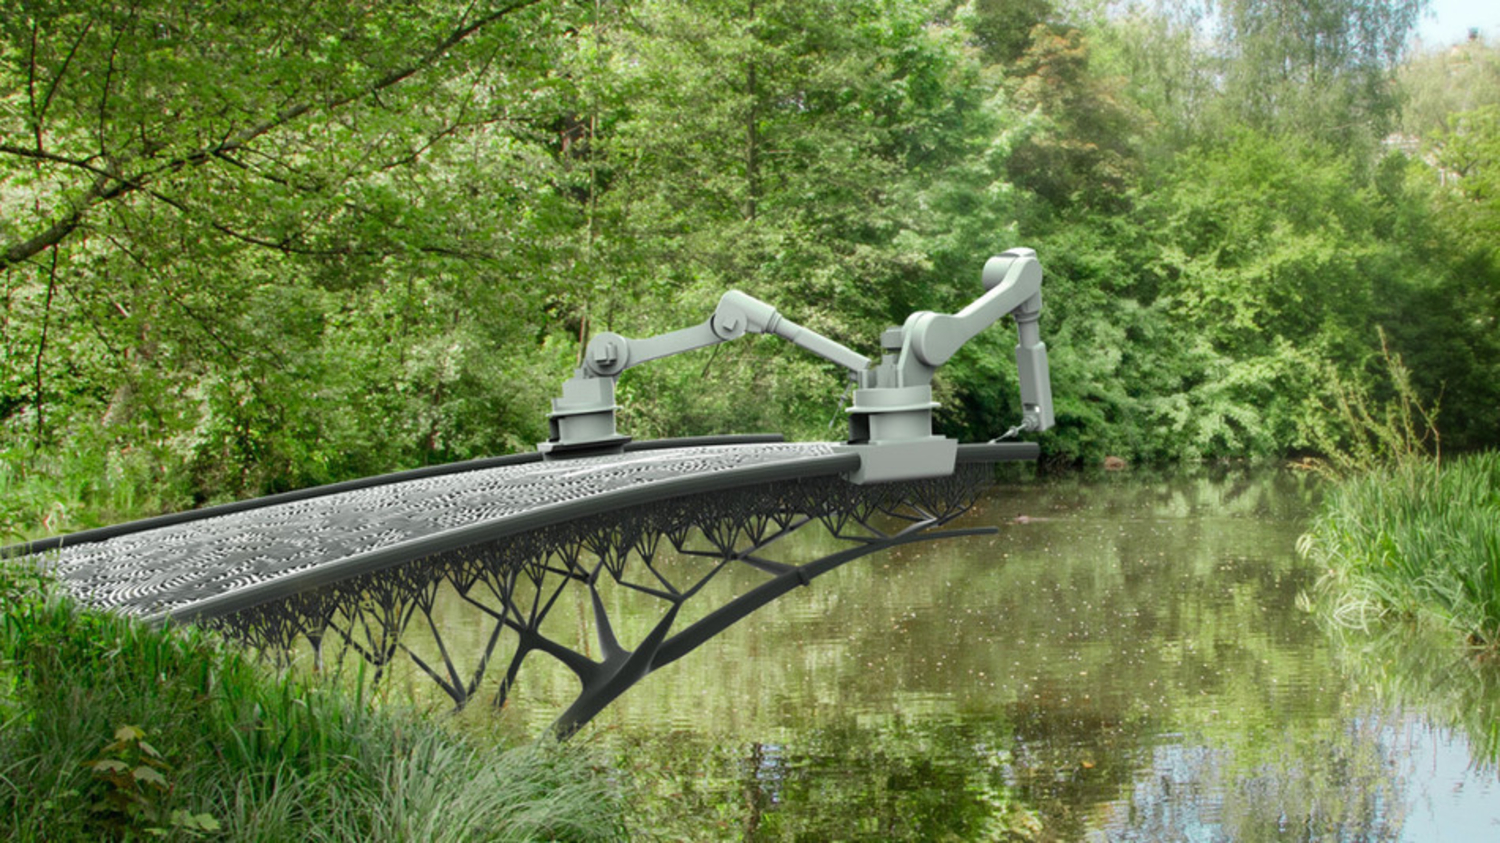 The First 3D Printed Bridge!